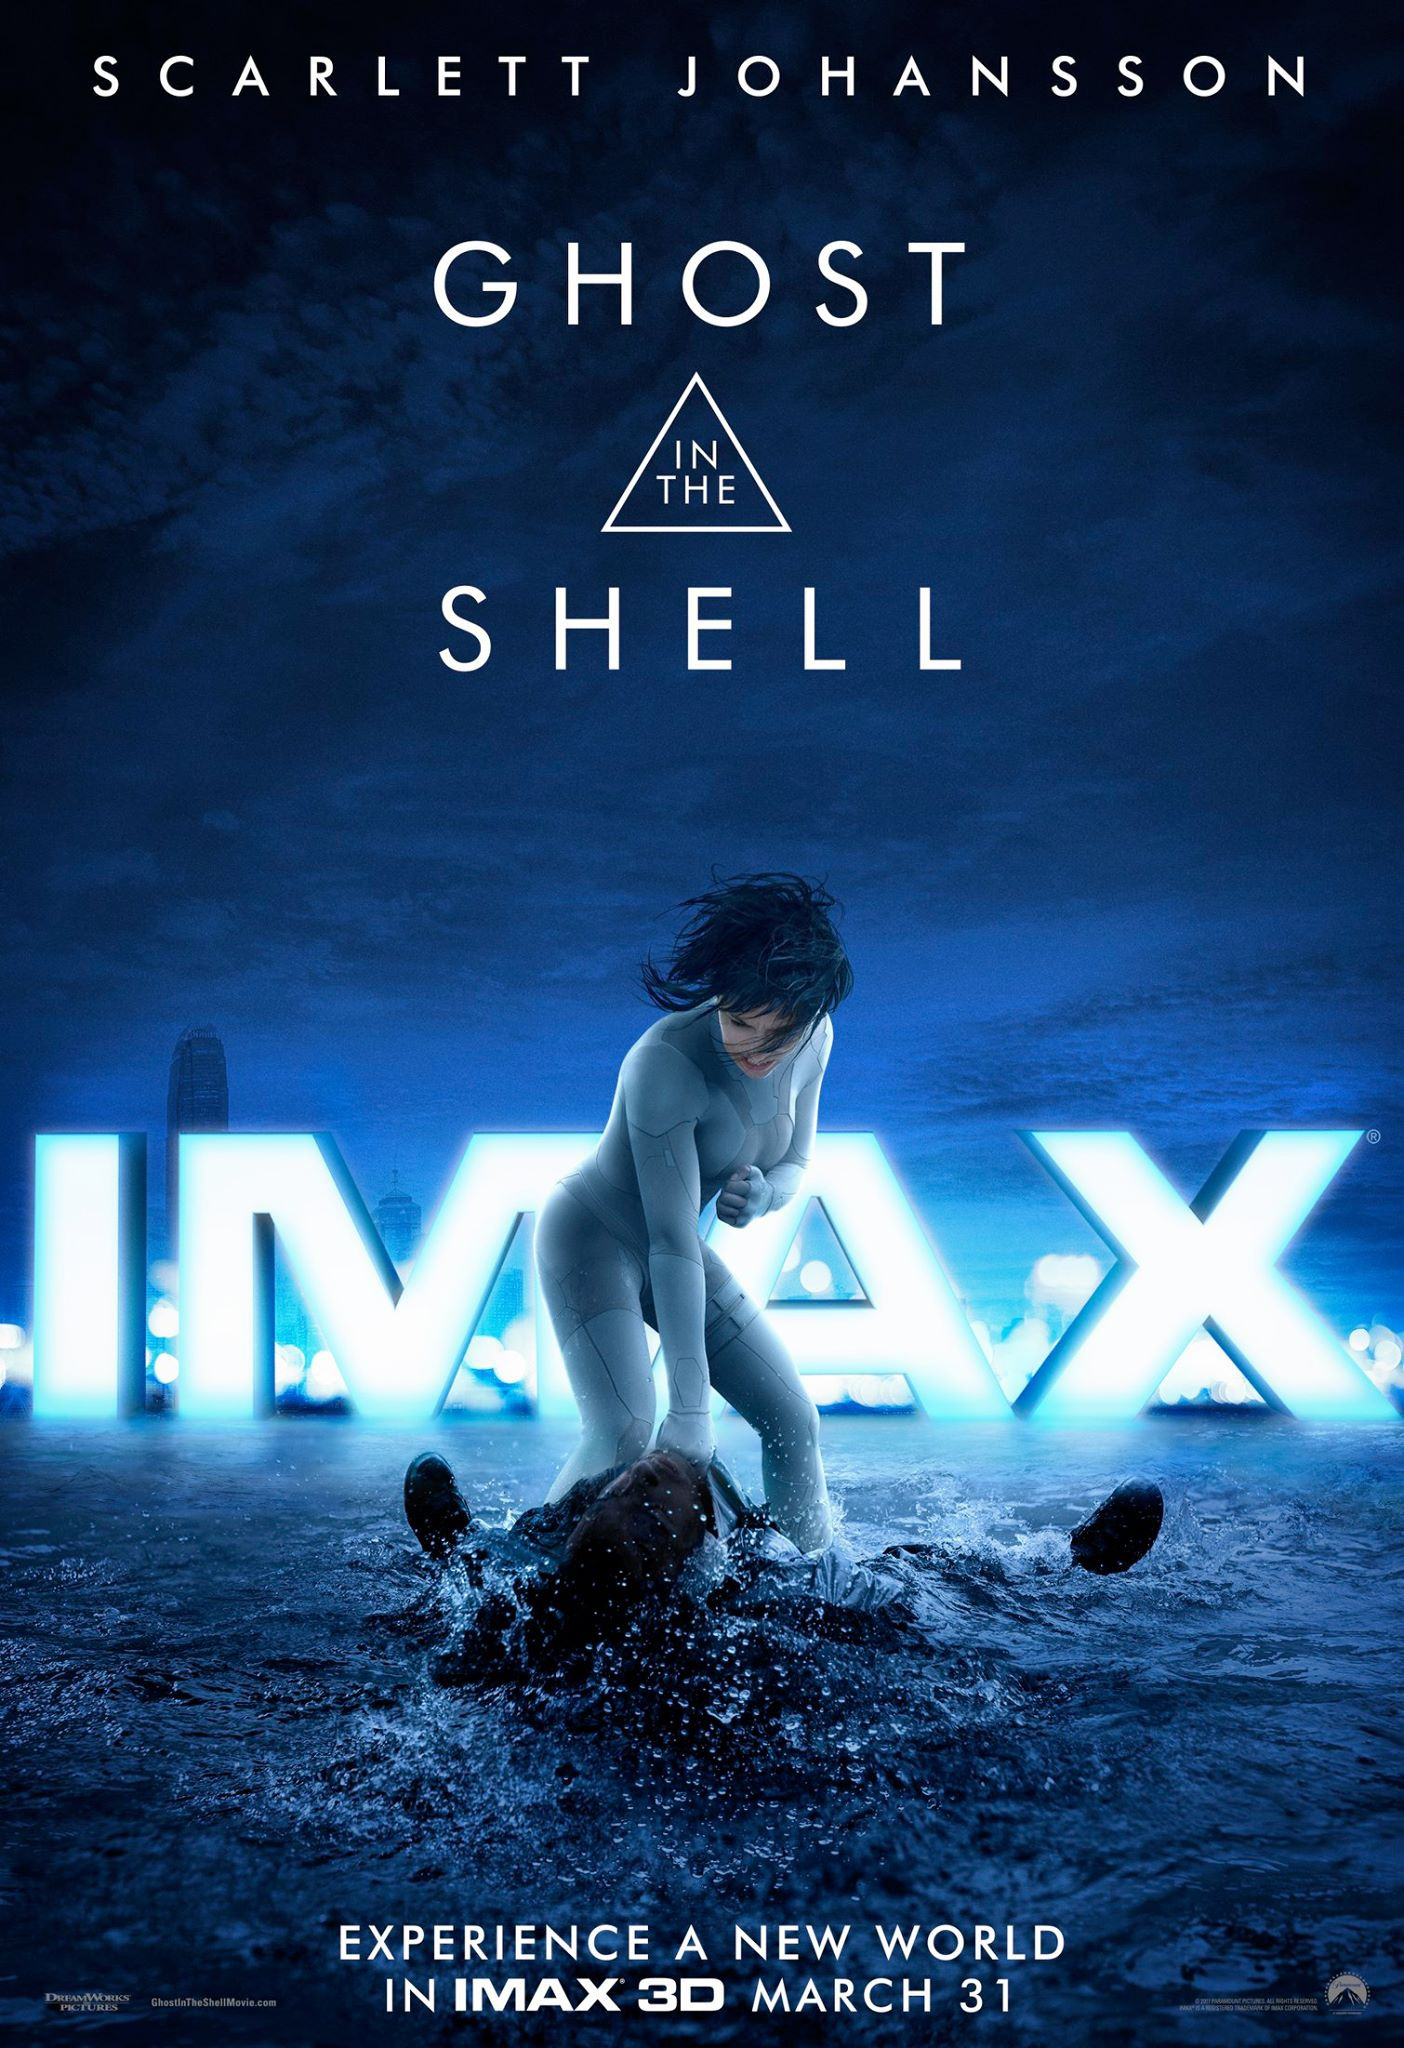 ghostintheshell-poster7big